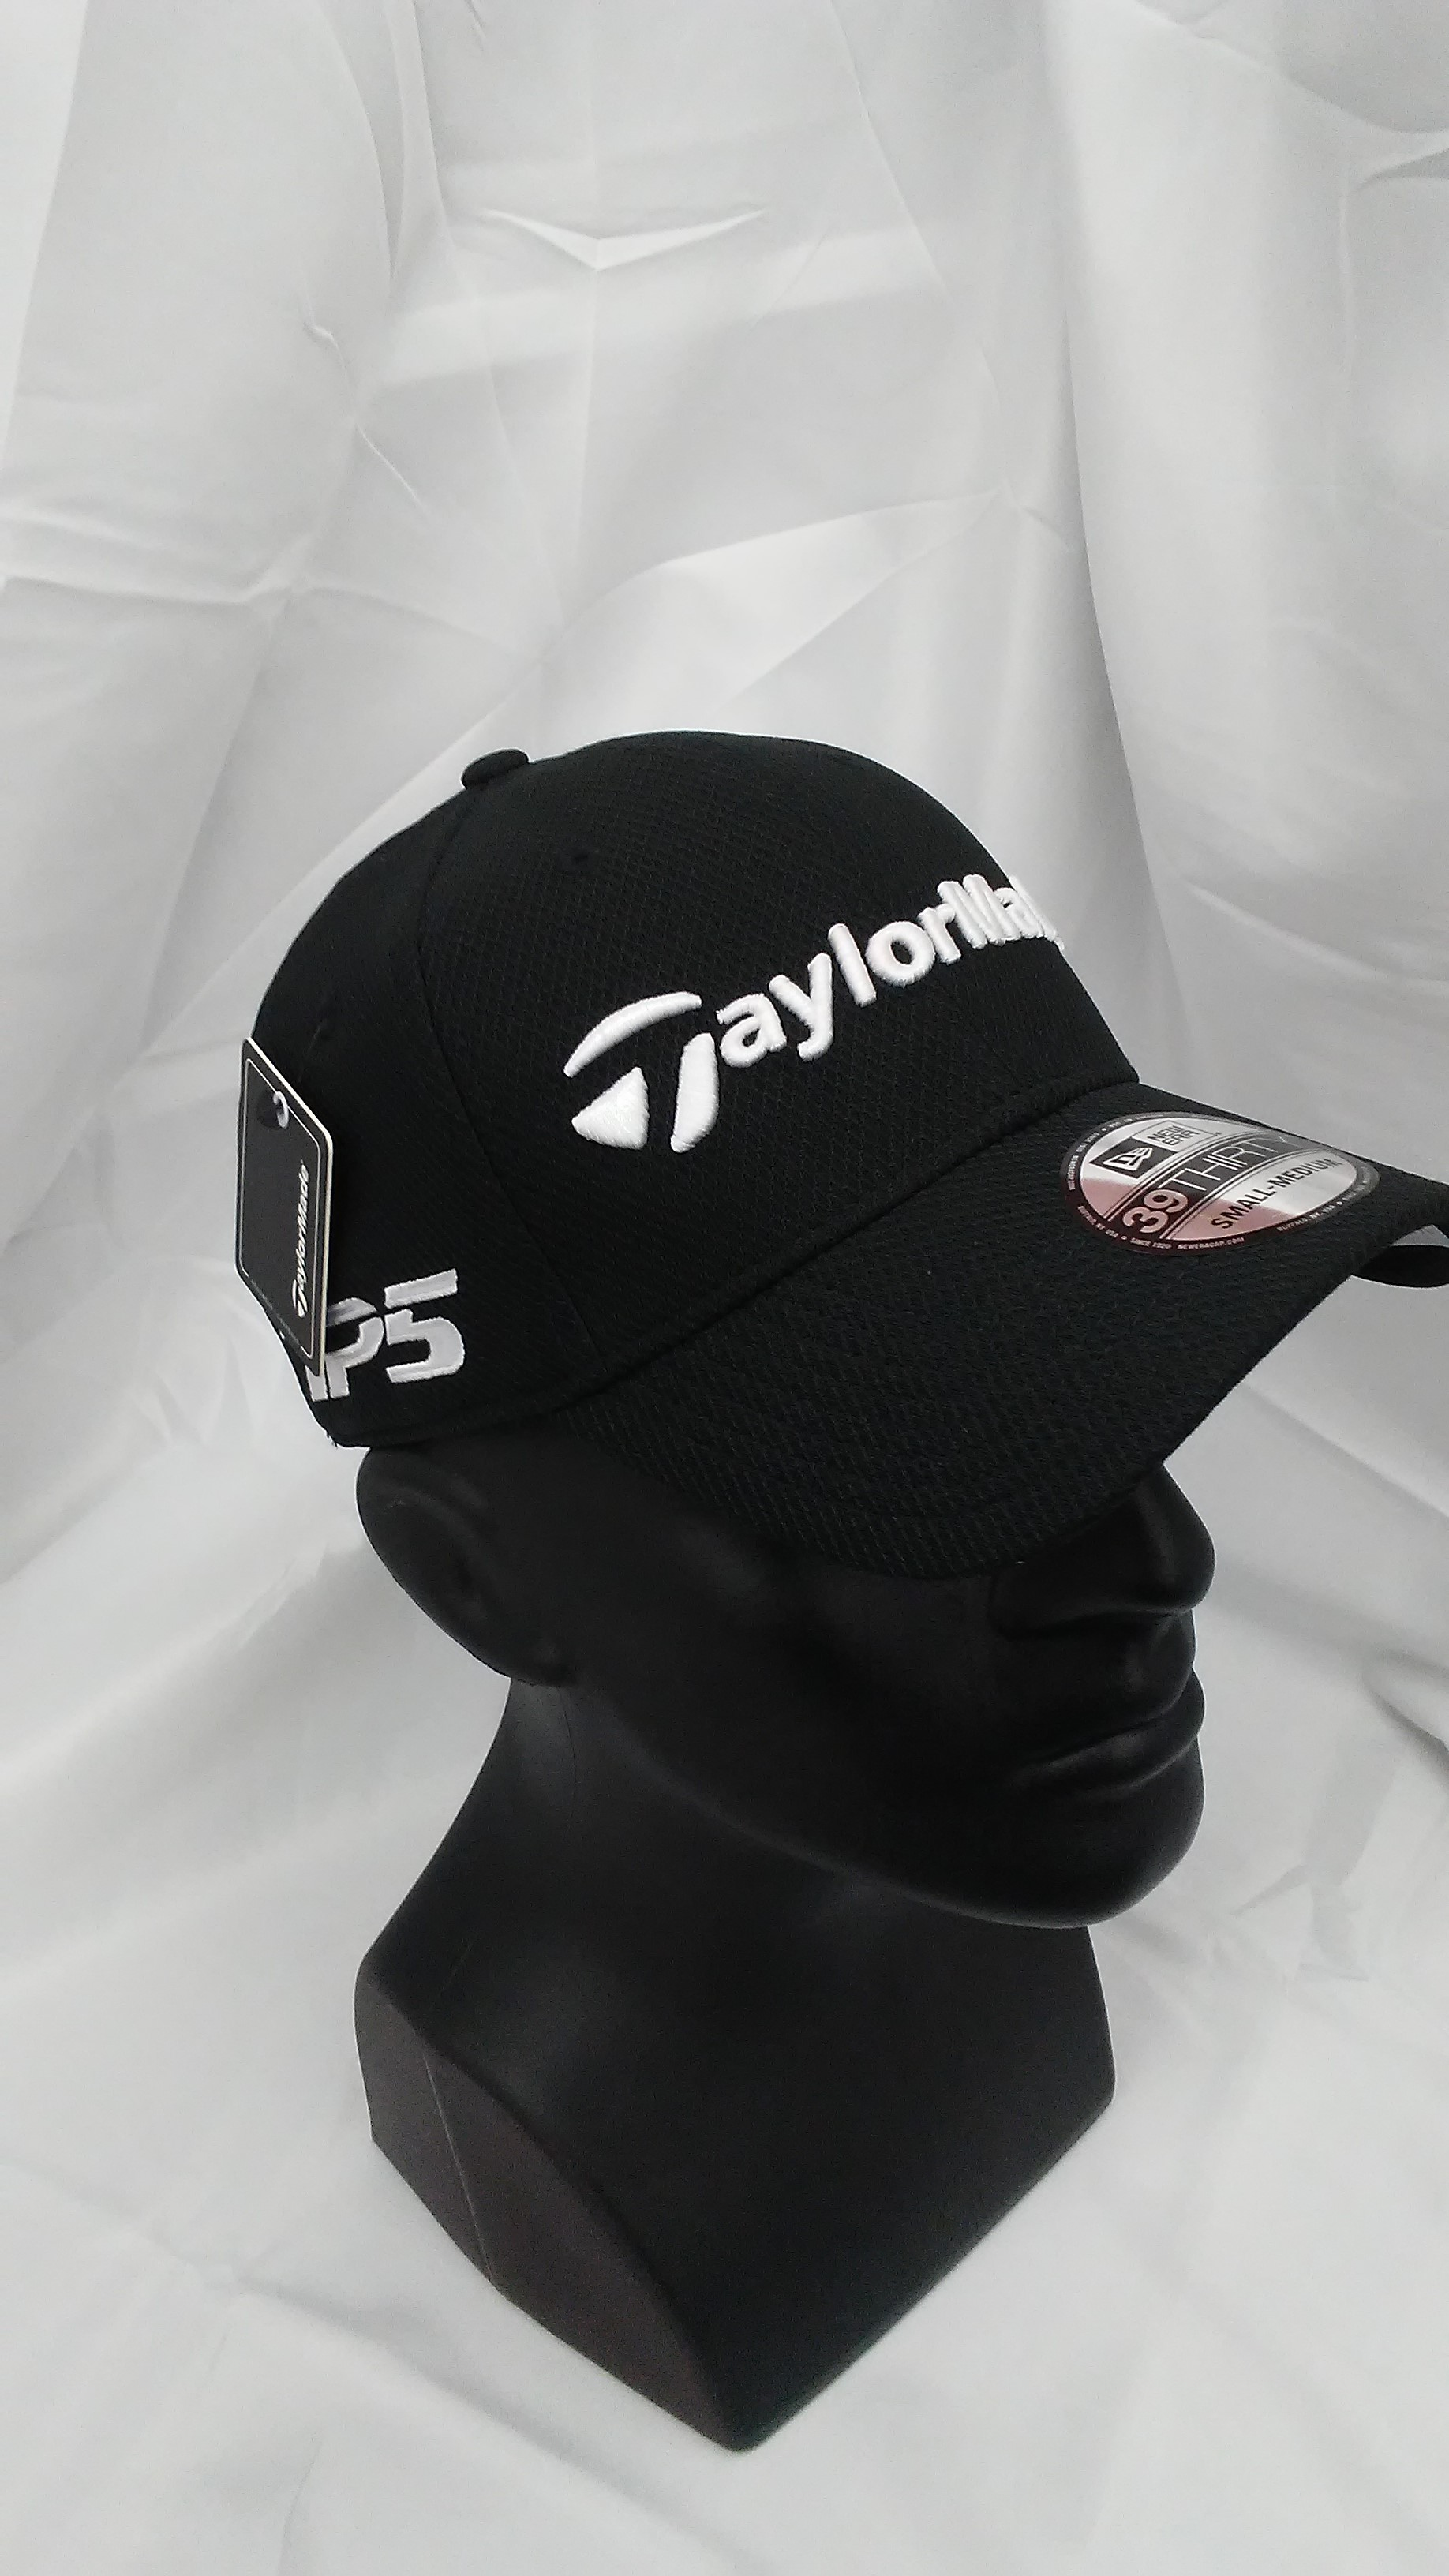 32163922644 Visit our eBay Store for more great deals  Hurricane Golf New TaylorMade  Tour 39Thirty New Era Fitted Cap Black S M BUY IT NOW  9.99!